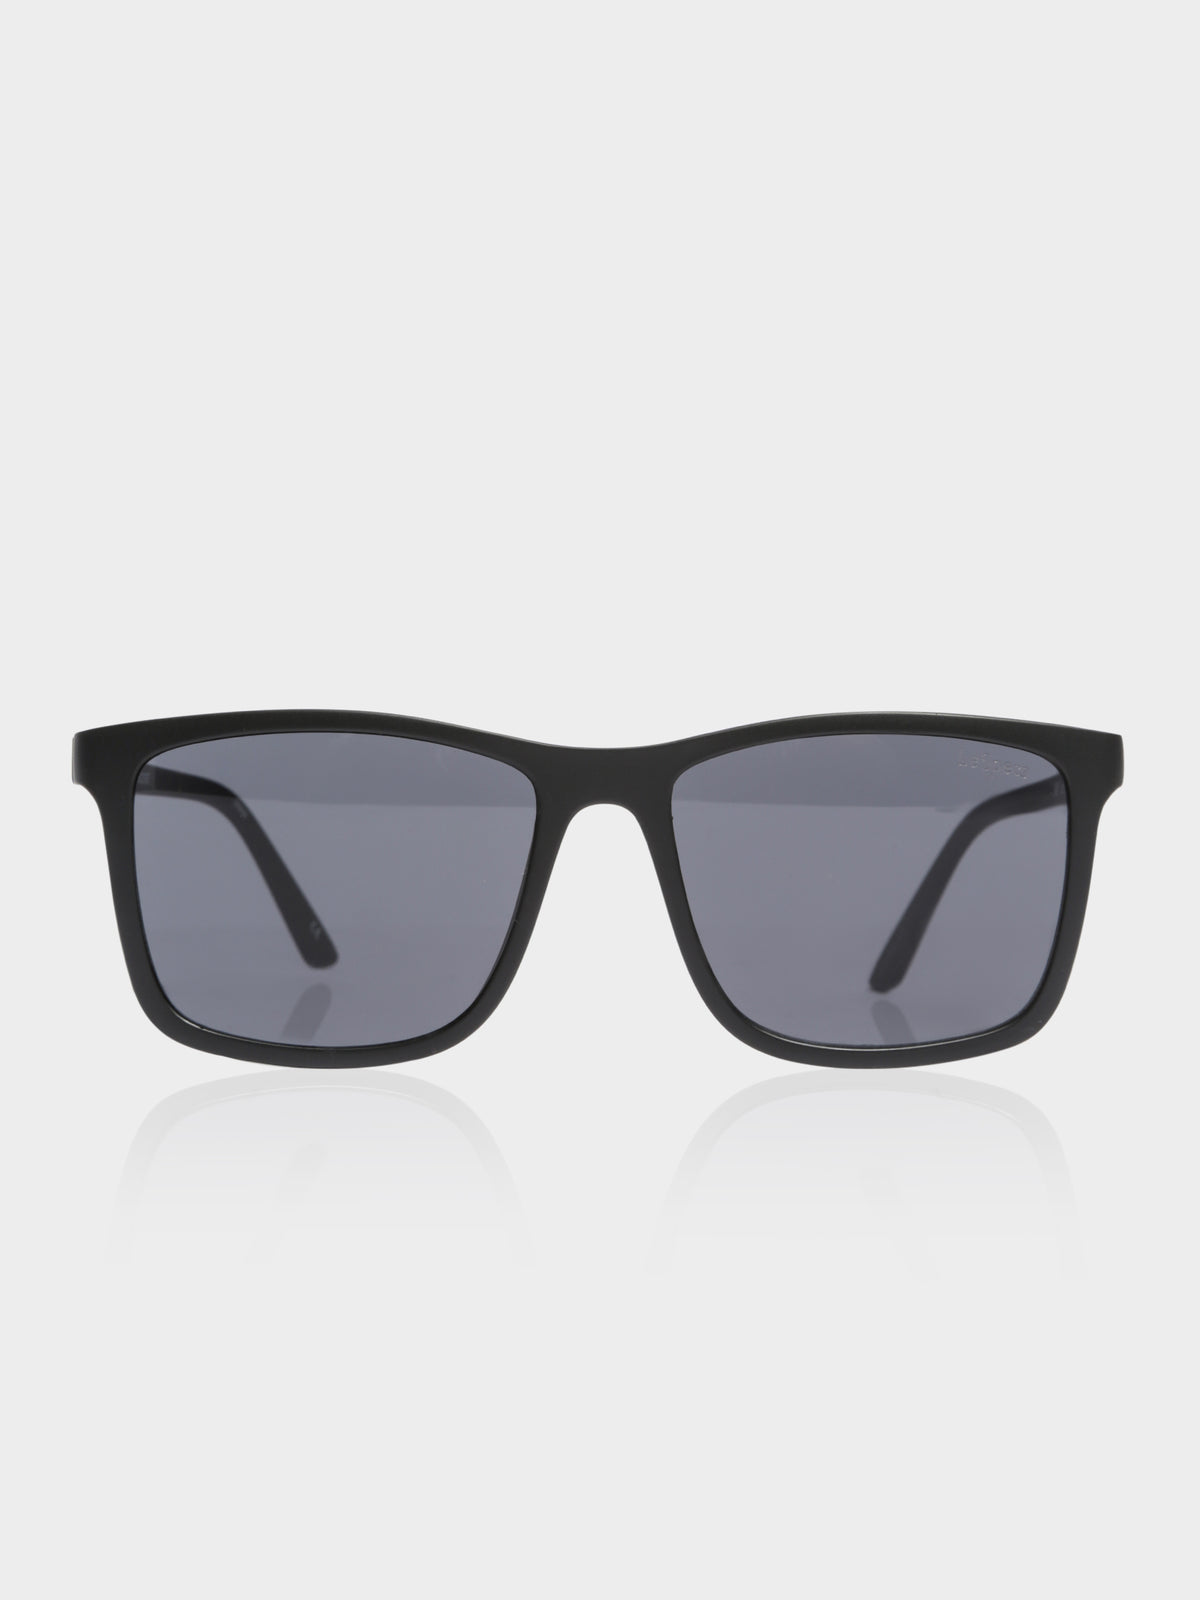 Master Tamers Sunglasses in Matte Black